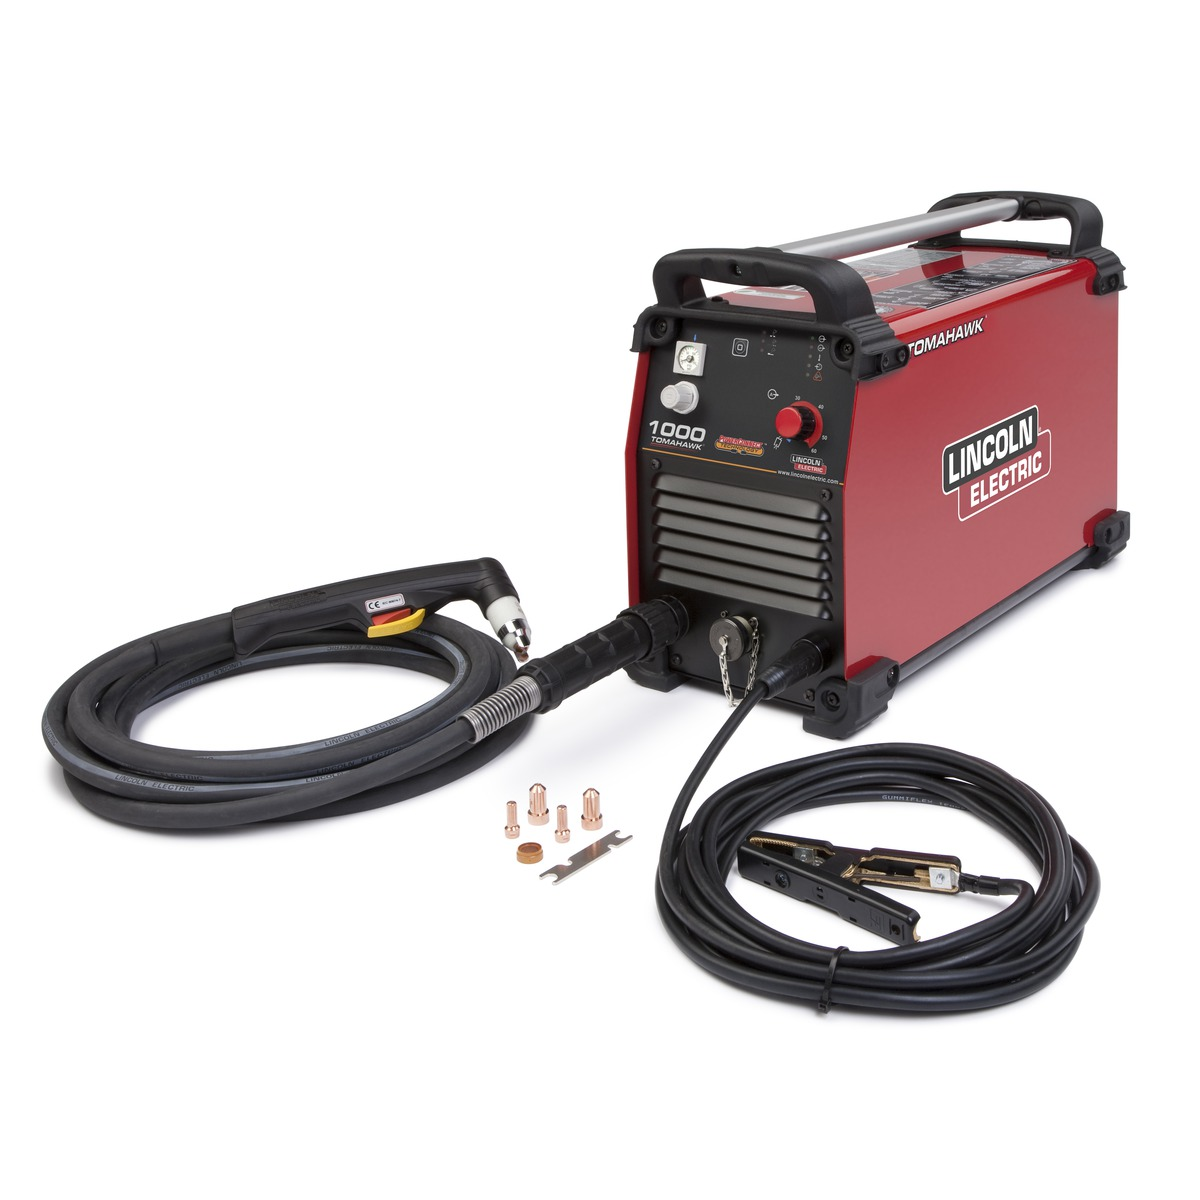 Tomahawk 1000 Plasma Cutter With Hand Torch K28081. How Much Does Dentist Make Printer For Lease. Trusted Online Payday Loans New Fords Cars. American Allied University The General Chords. College Math Online Courses Ad Agency Tampa. Insurance For Physiotherapists. Is Life Insurance Worth It Develop E Learning. Mechanical Engineer Training. Best Consolidated Credit Companies